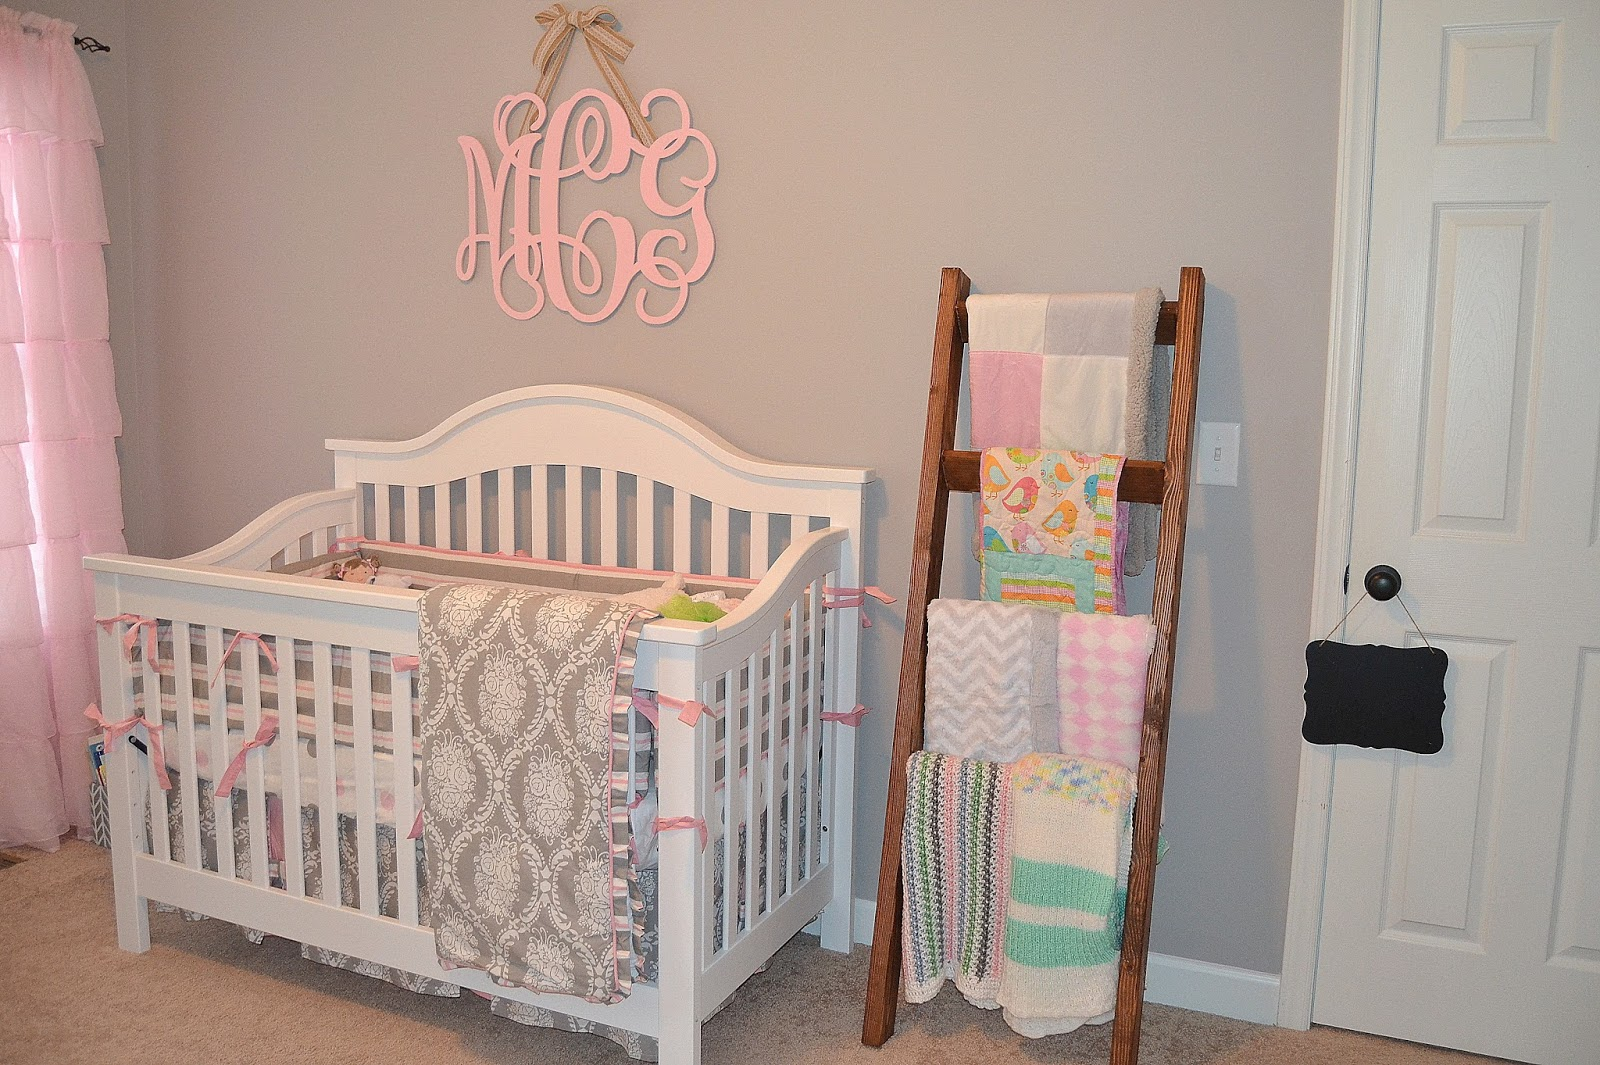 Diy Crafts For Baby Room: The Sweetest Nest : DIY Blanket Ladder + Nursery Peek